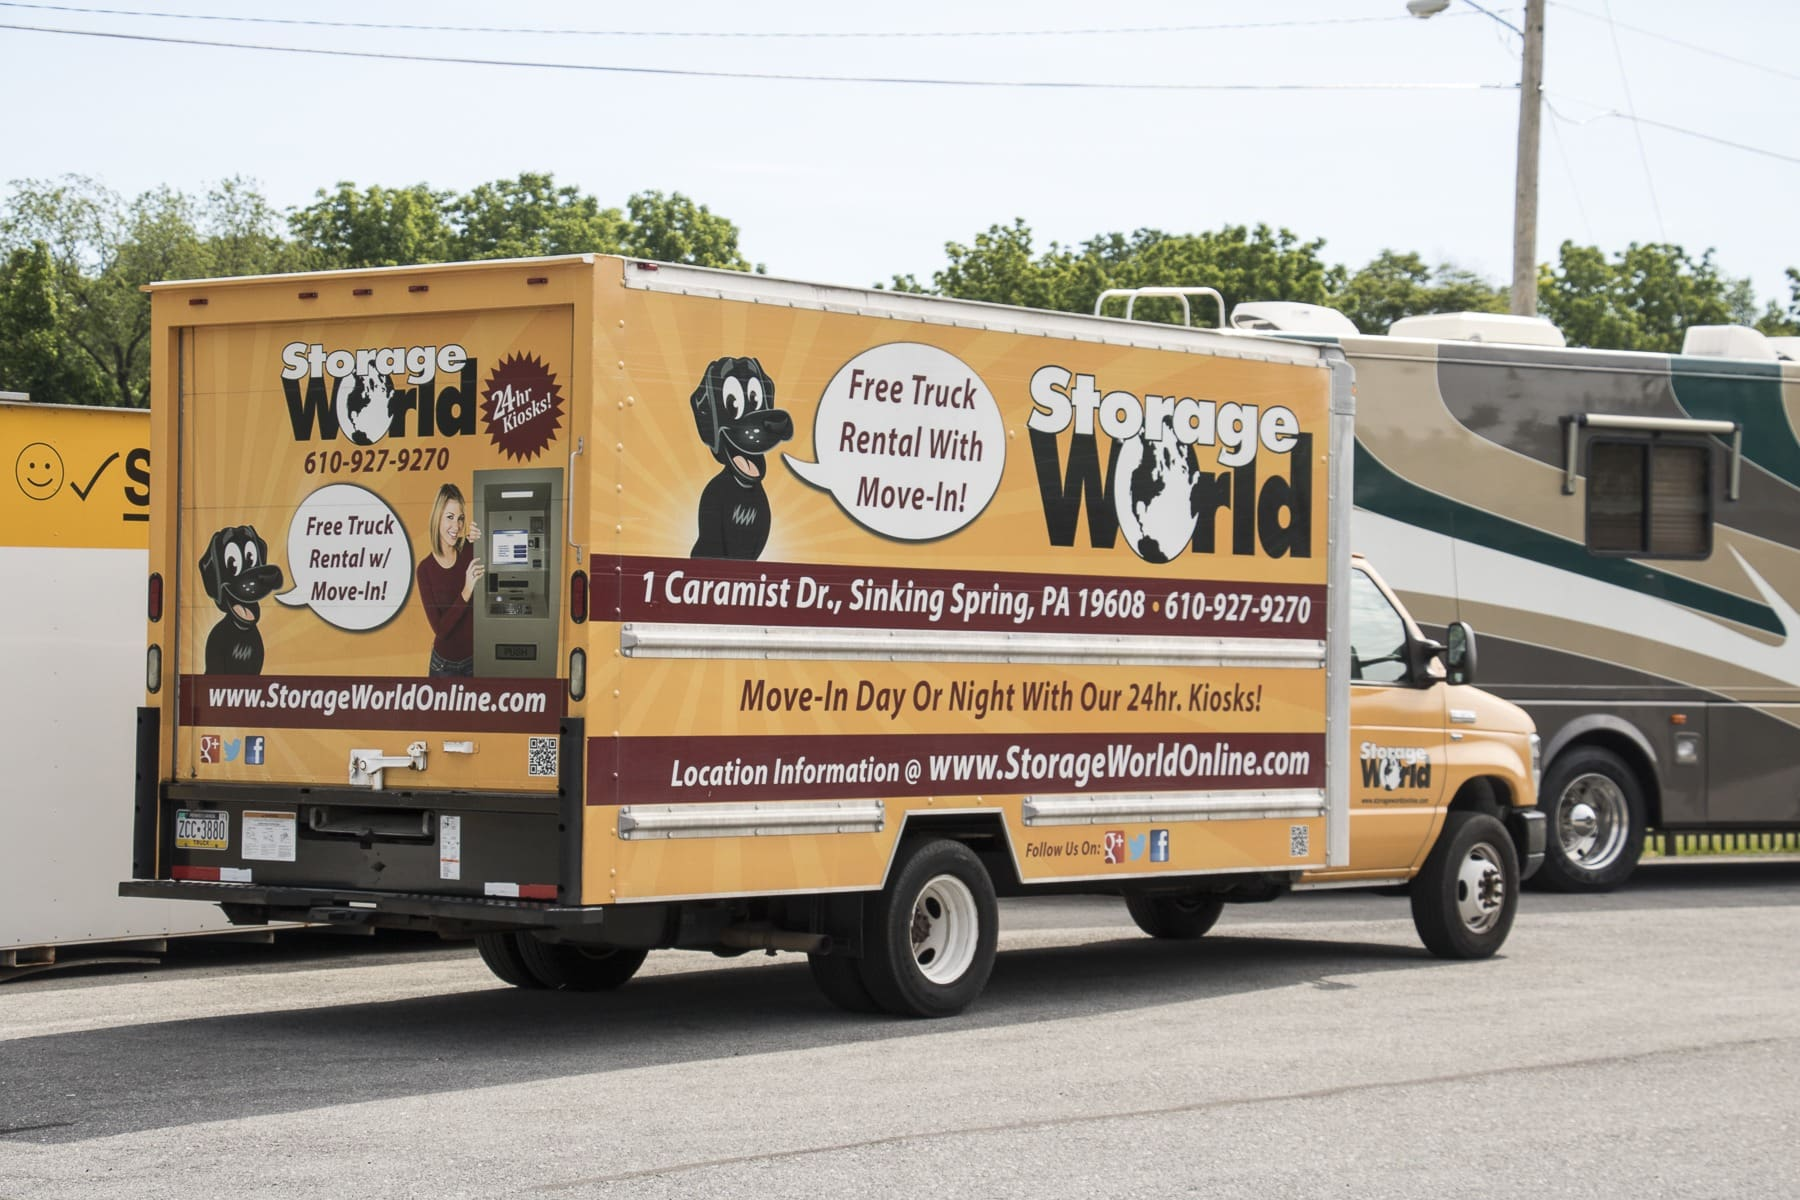 Free Truck Rental at Storage World Self Storage Units